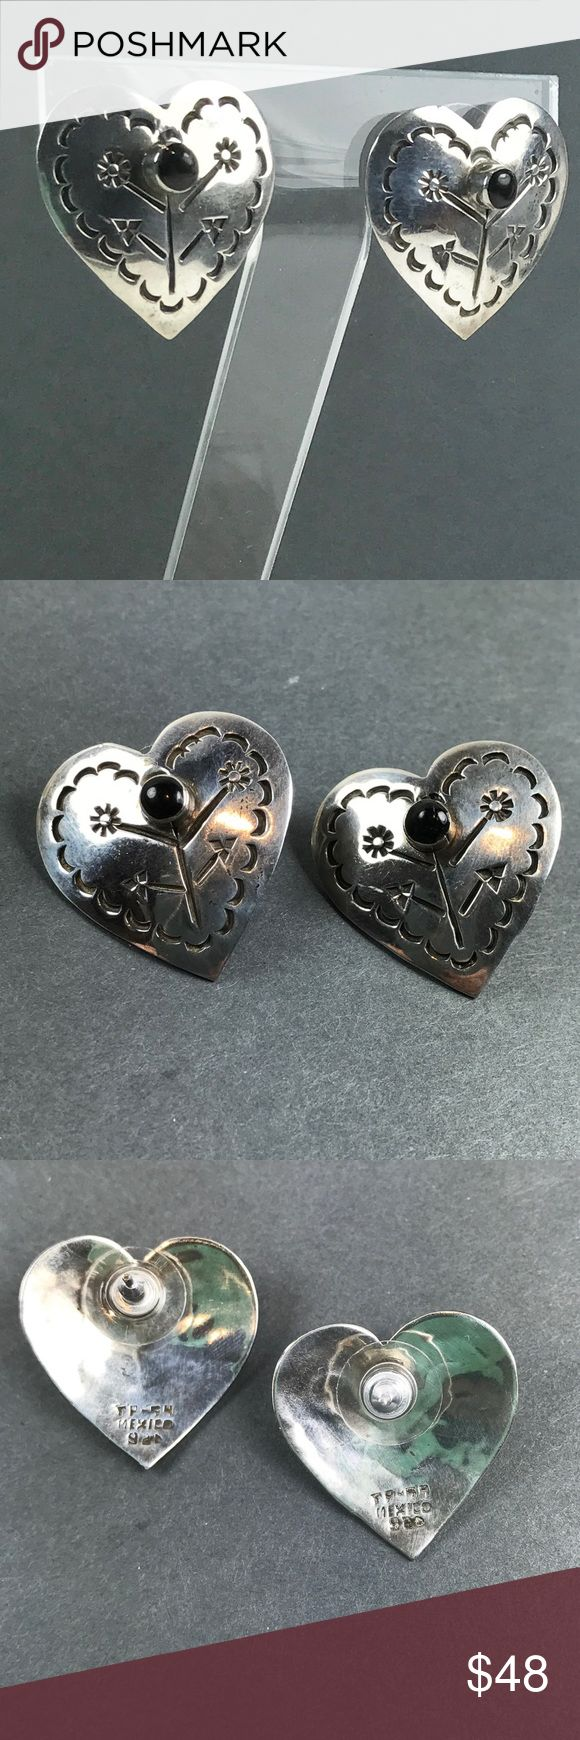 Vtg Sterling Silver Onyx Southwest Heart Earrings Gorgeous vintage Sterling Silver heart earrings Has Onyx stone and decorative marks on front  Marked on back Mexico 925 Measures approximately 1 inch wide and in length From pet and smoke free location Vintage Jewelry Earrings